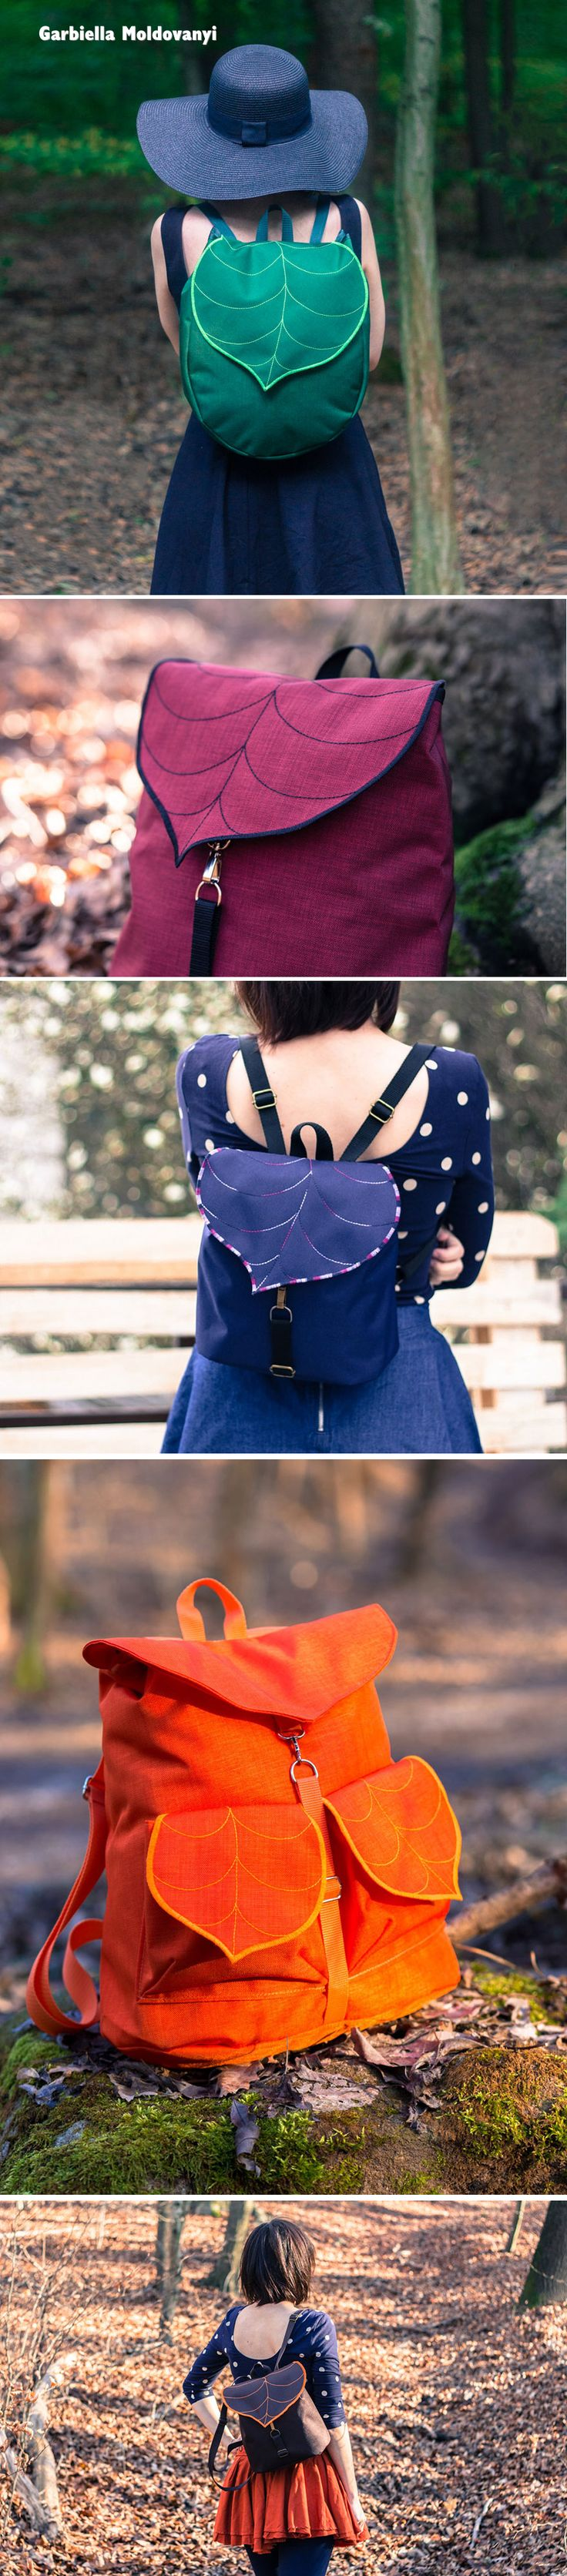 """Leafling is a Budapest-based shop that's taking a leaf out of nature by using the natural world to inspire these beautiful bags and backpacks.... Garbiella Moldovanyi and her partner Adam are the creative duo behind the scenes, and their designs are based around the shape of leaves to create a product that's both practical and evocative."""